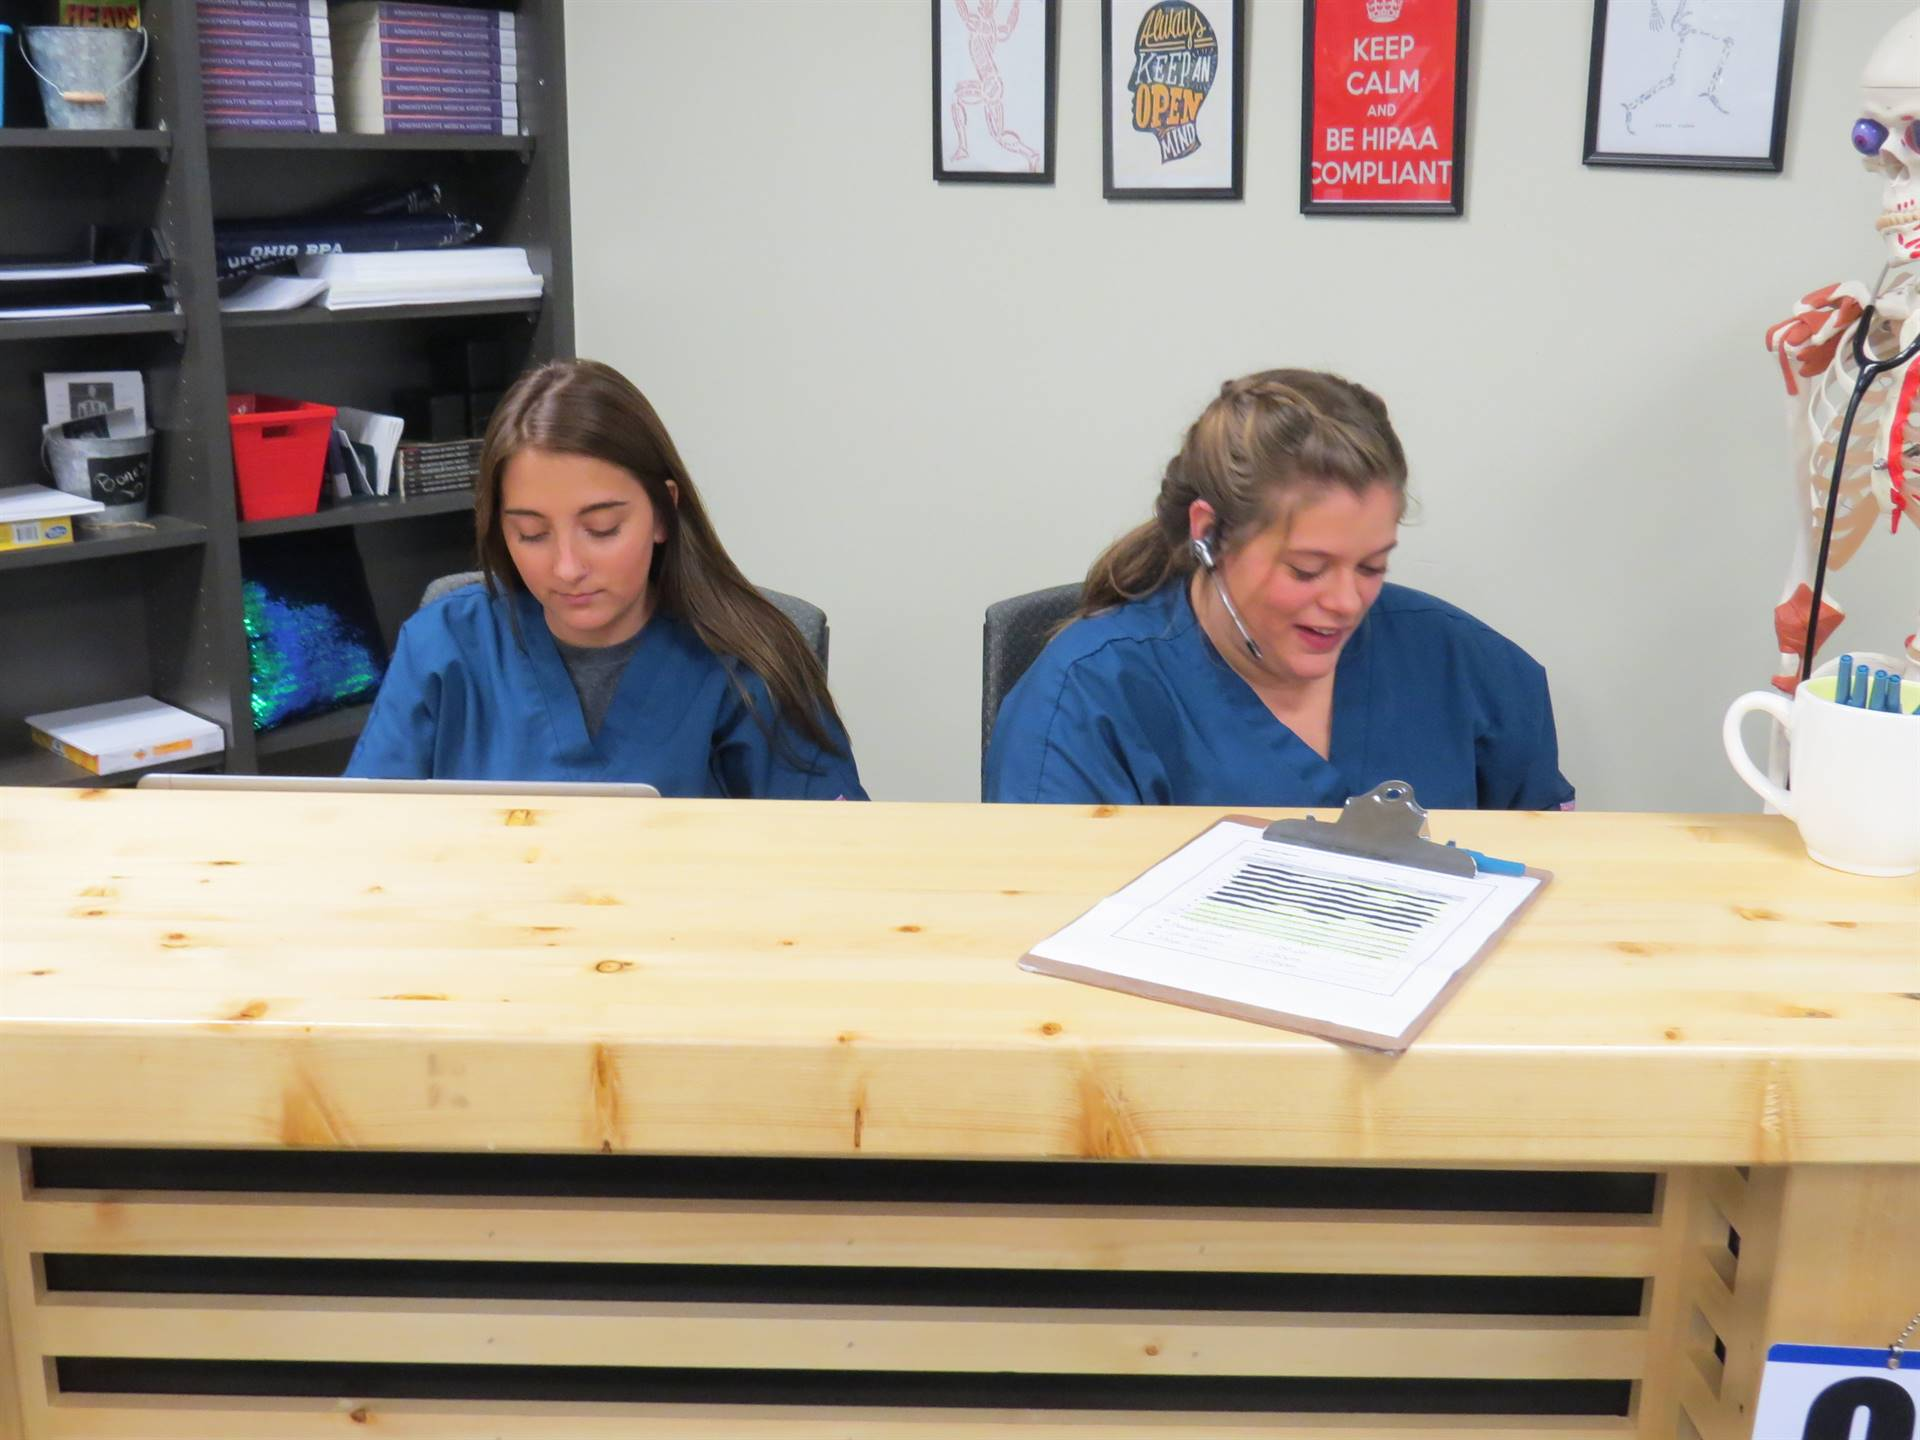 Two female students working the reception desk